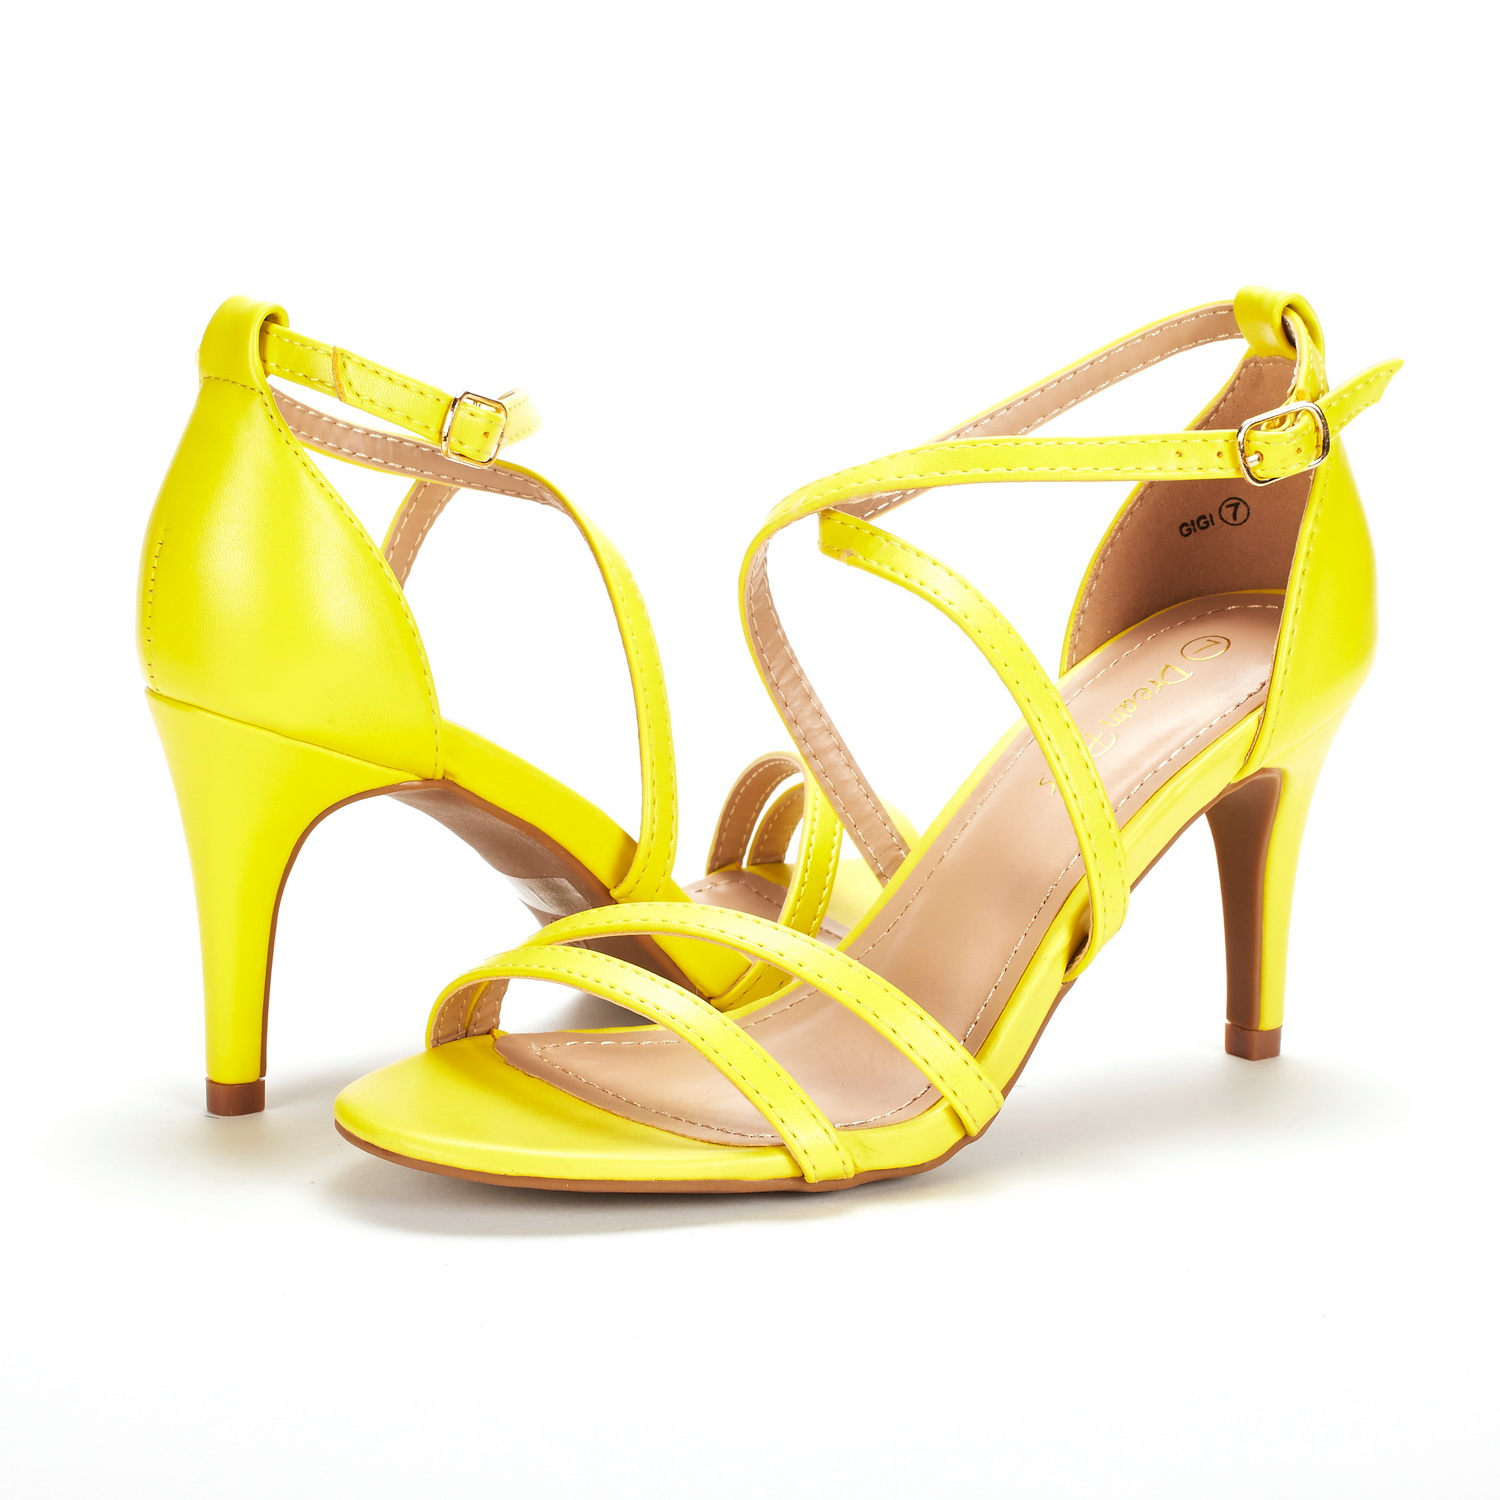 DREAM-PAIRS-Women-039-s-Ankle-Strap-High-Heel-Sandals-Dress-Shoes-Wedding-Party thumbnail 5